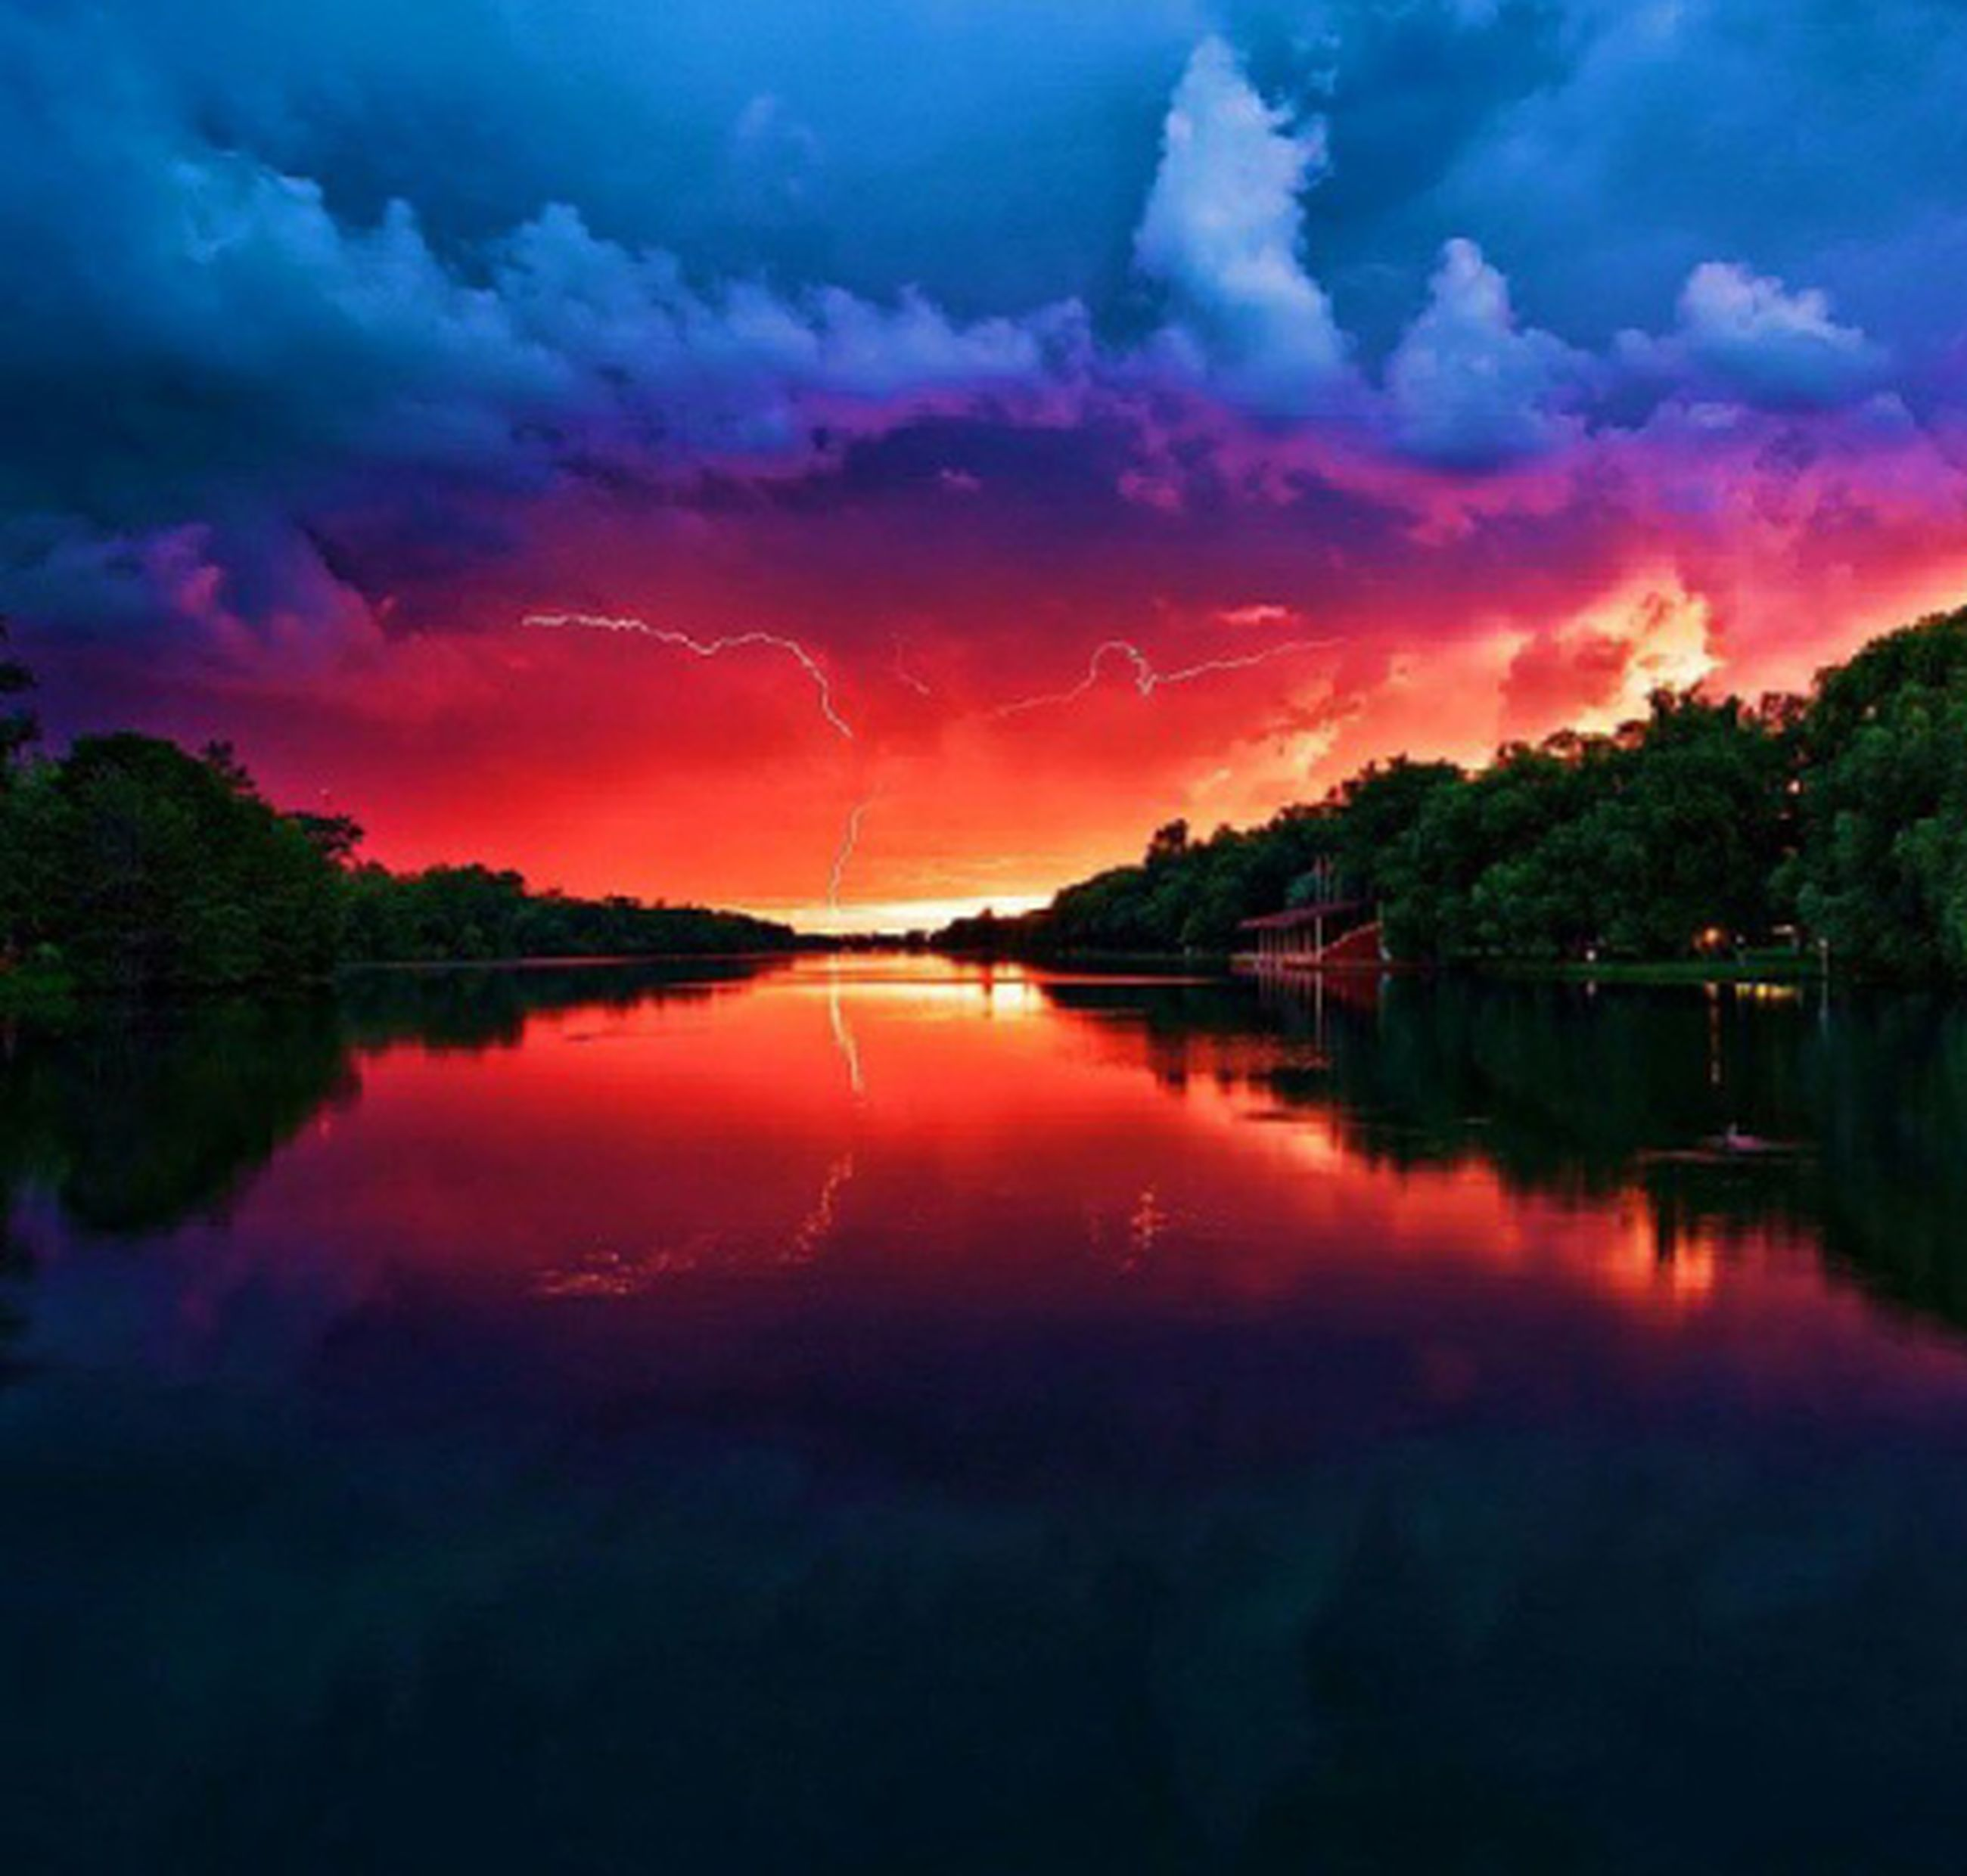 sunset, reflection, water, tranquil scene, lake, sky, scenics, tranquility, beauty in nature, tree, orange color, cloud - sky, idyllic, nature, dramatic sky, cloud, silhouette, waterfront, dusk, calm